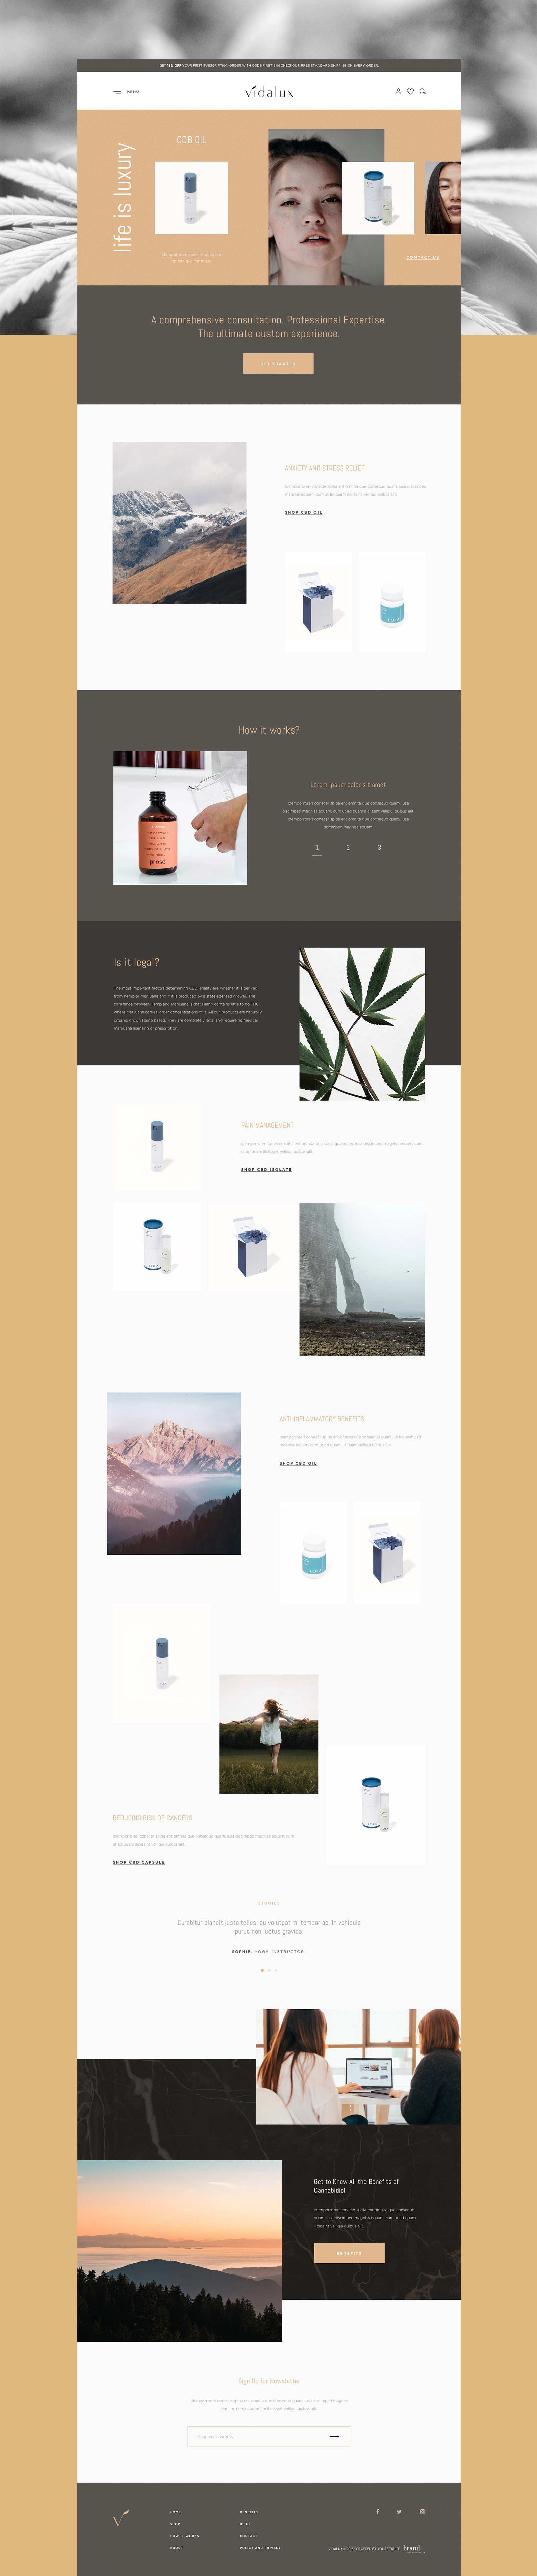 vidalux-home-page